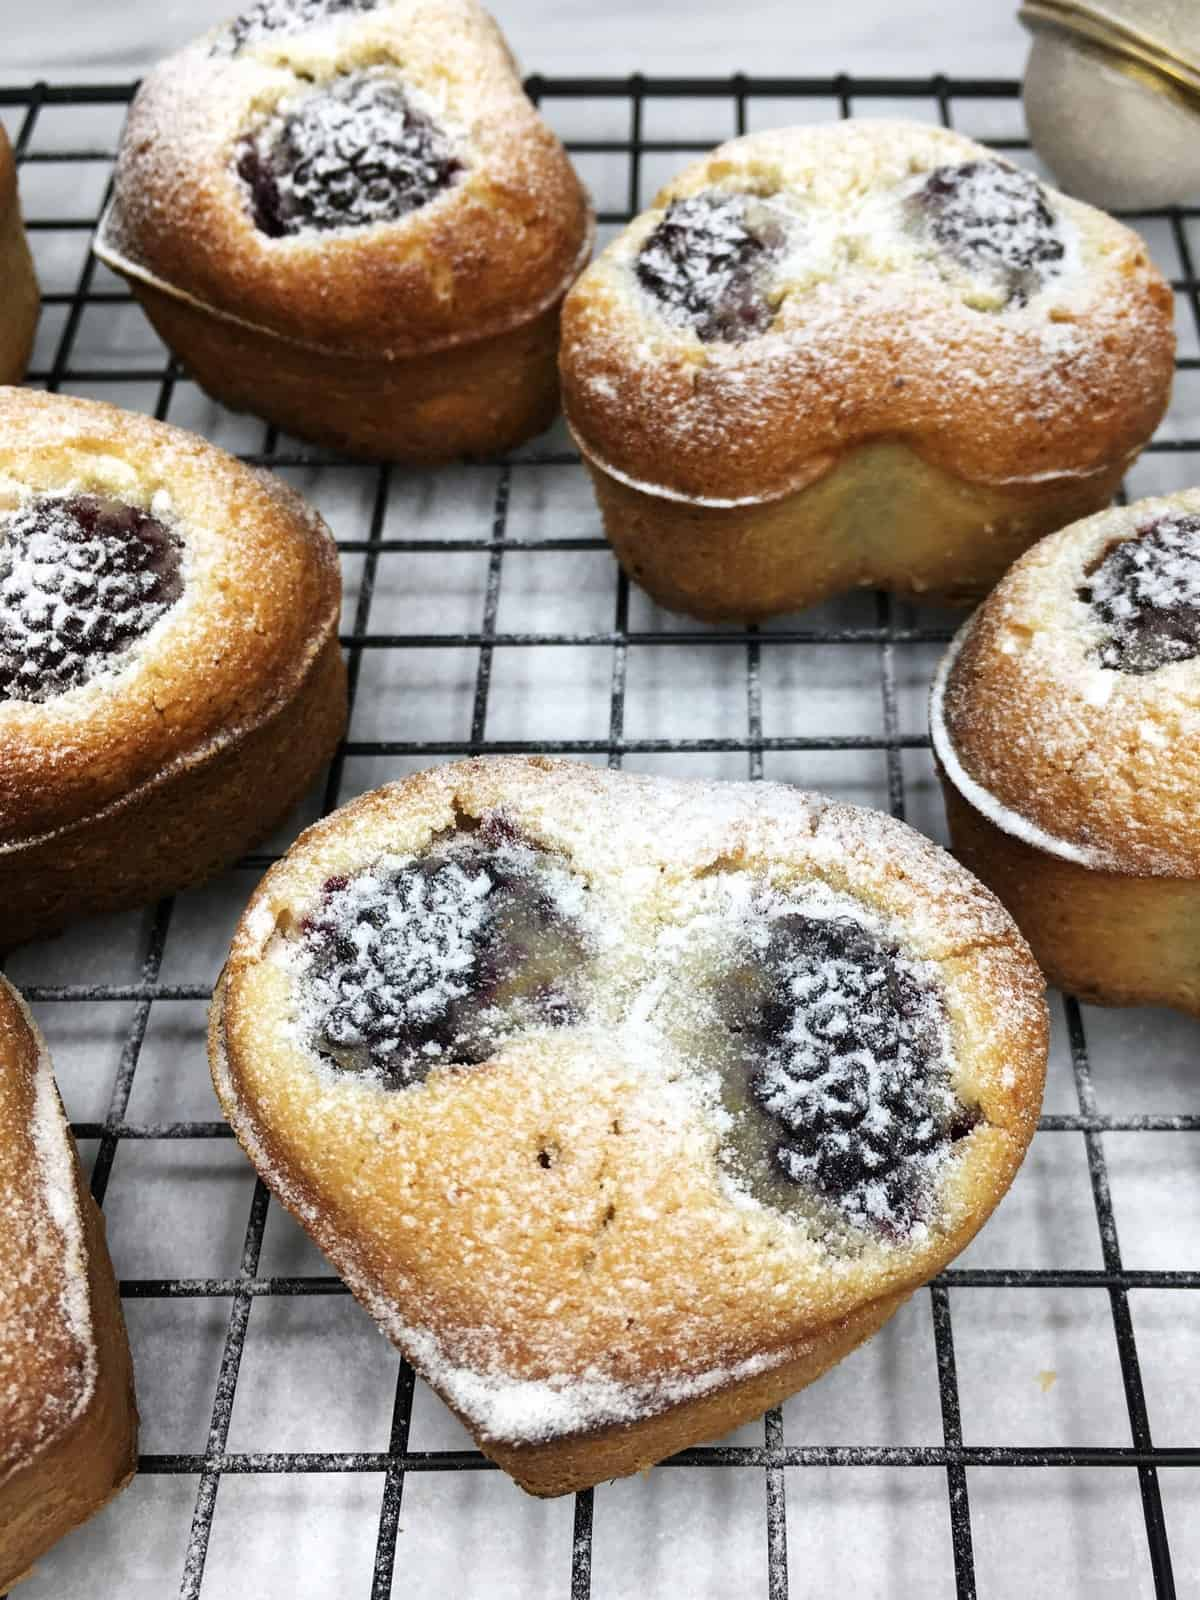 A batch of blackberry friands on a wire rack